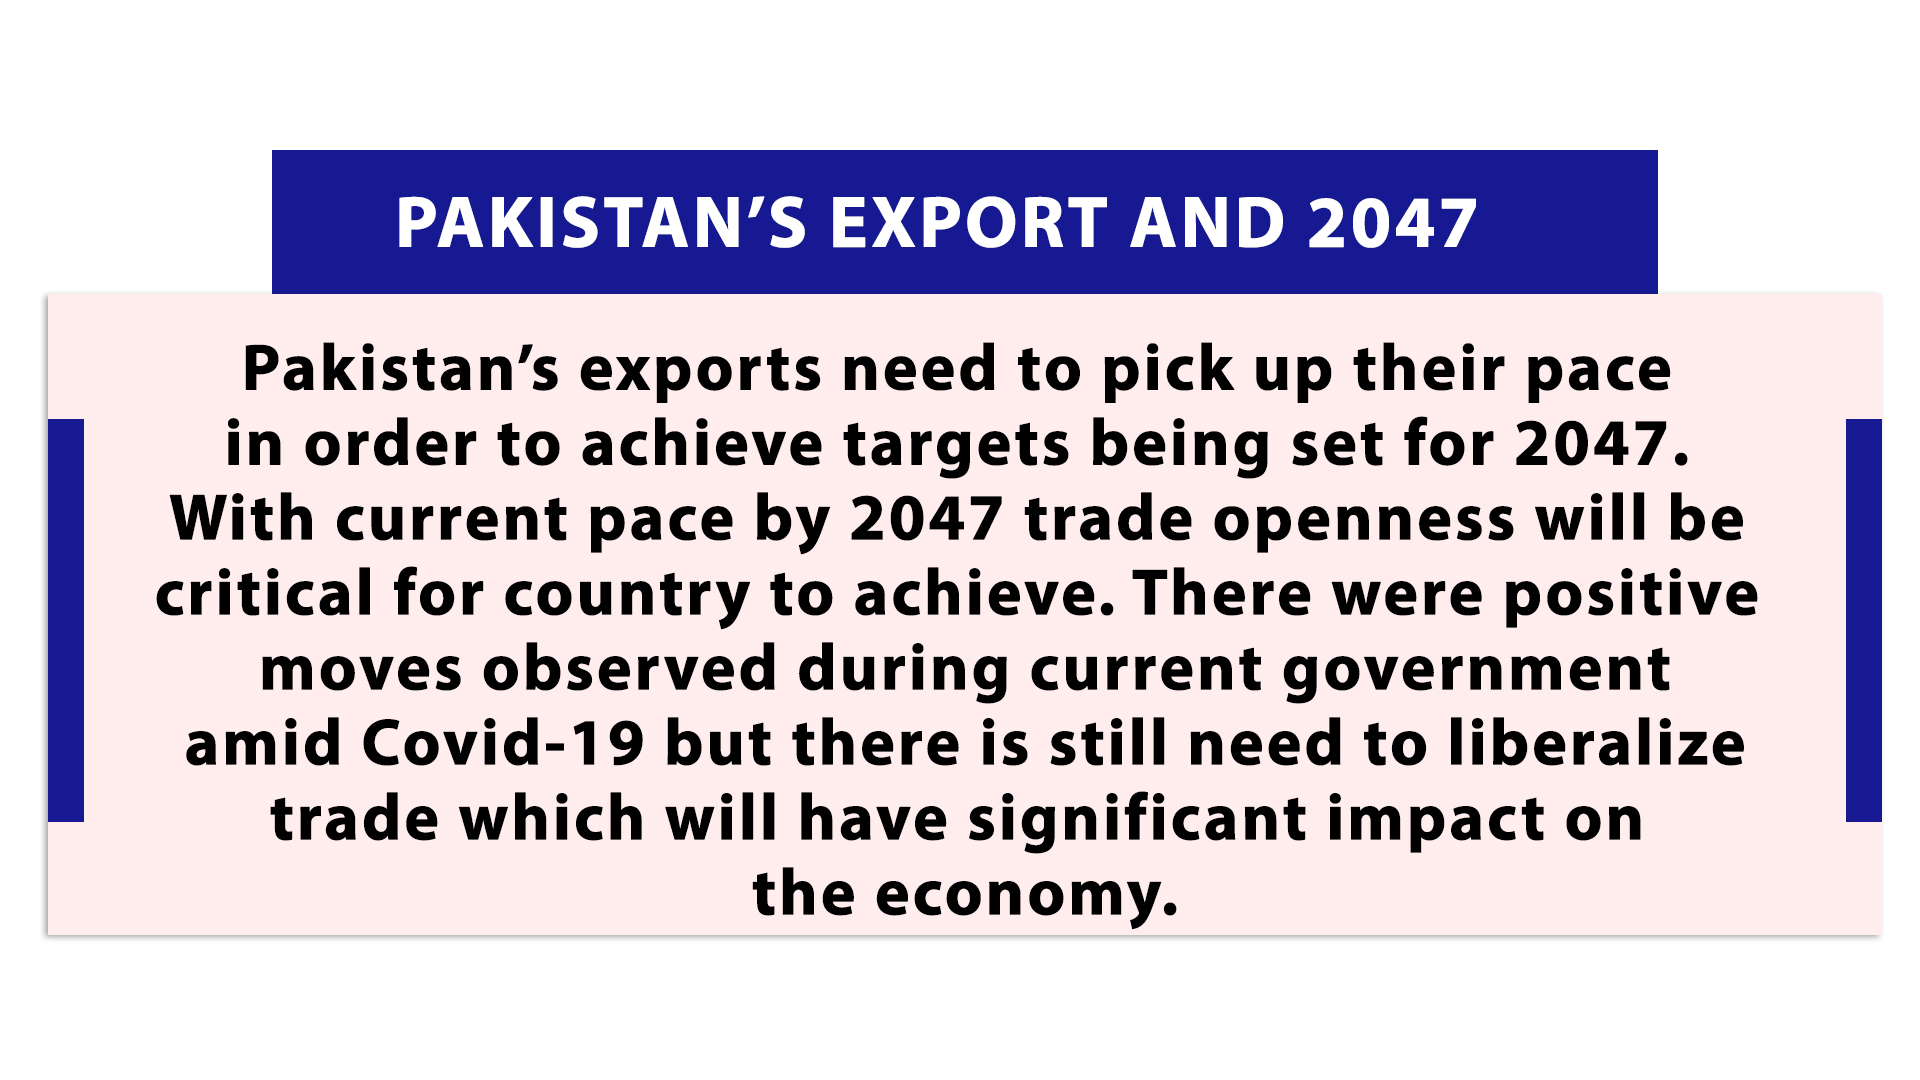 Pakistan's Export and 2047